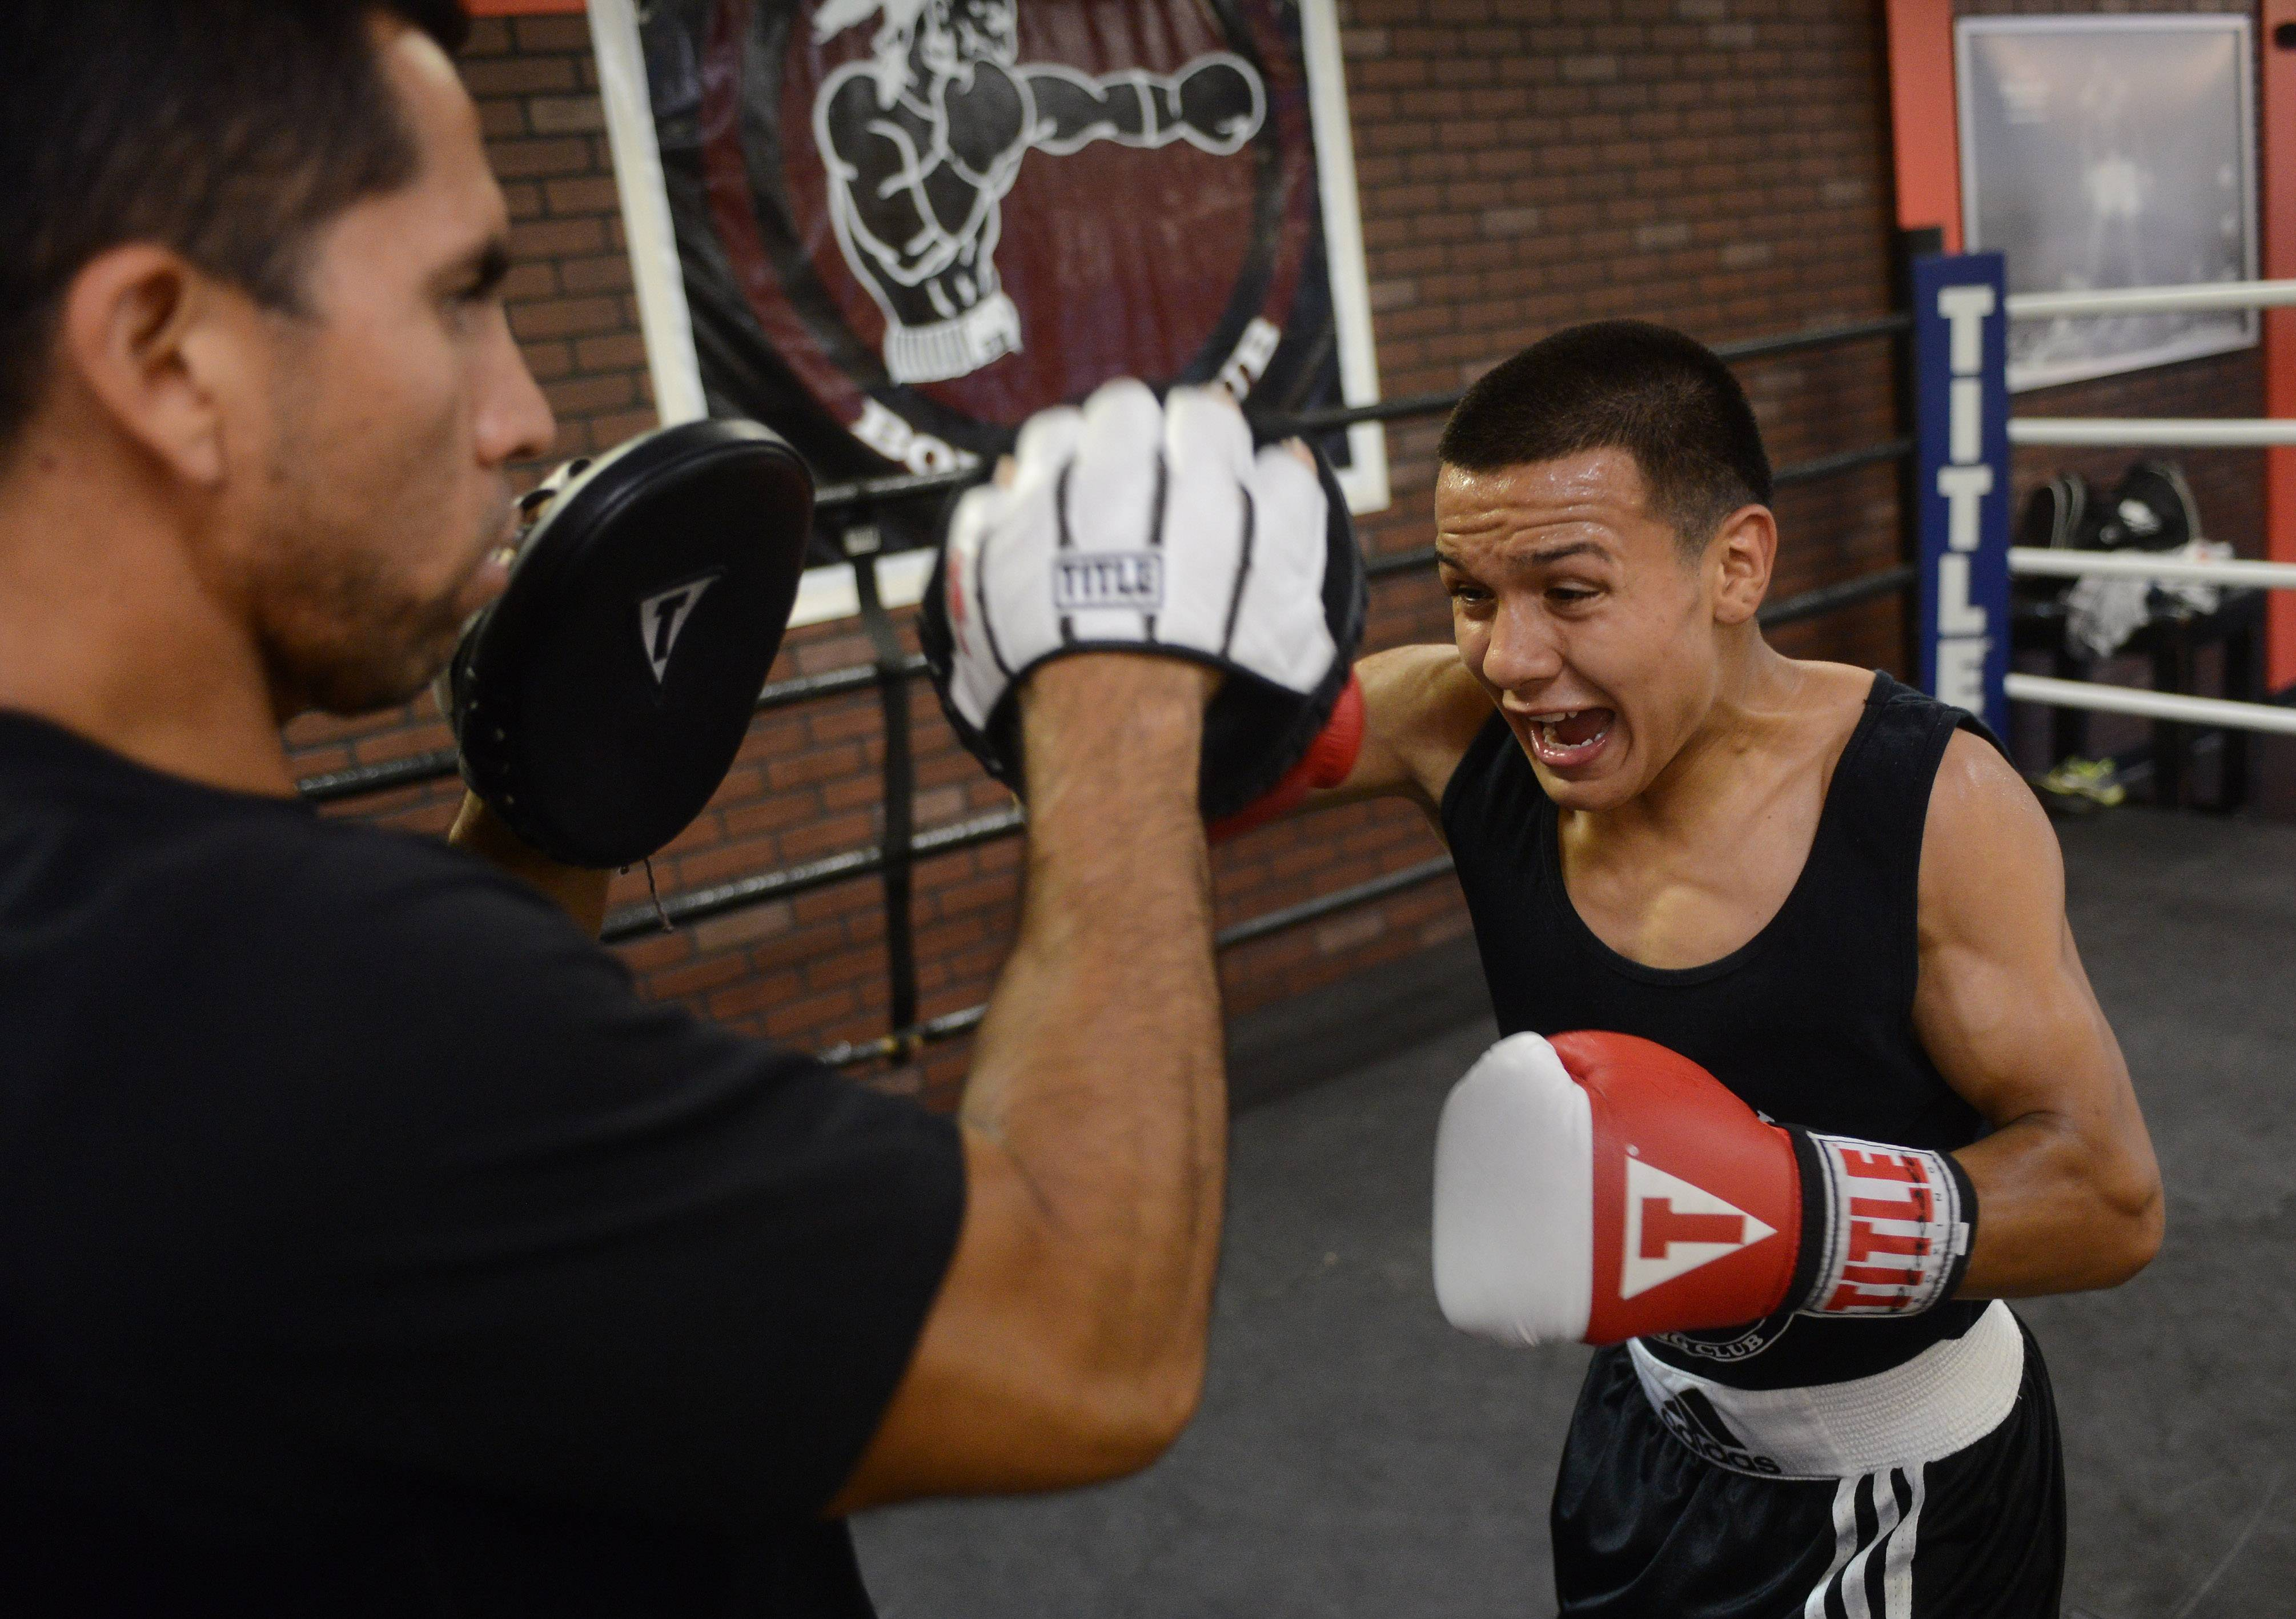 Boxer Javier Rivera, 19, works out with his coach, Pedro Calla, at Rumi Maki Boxing and Fitness gym in Palatine.